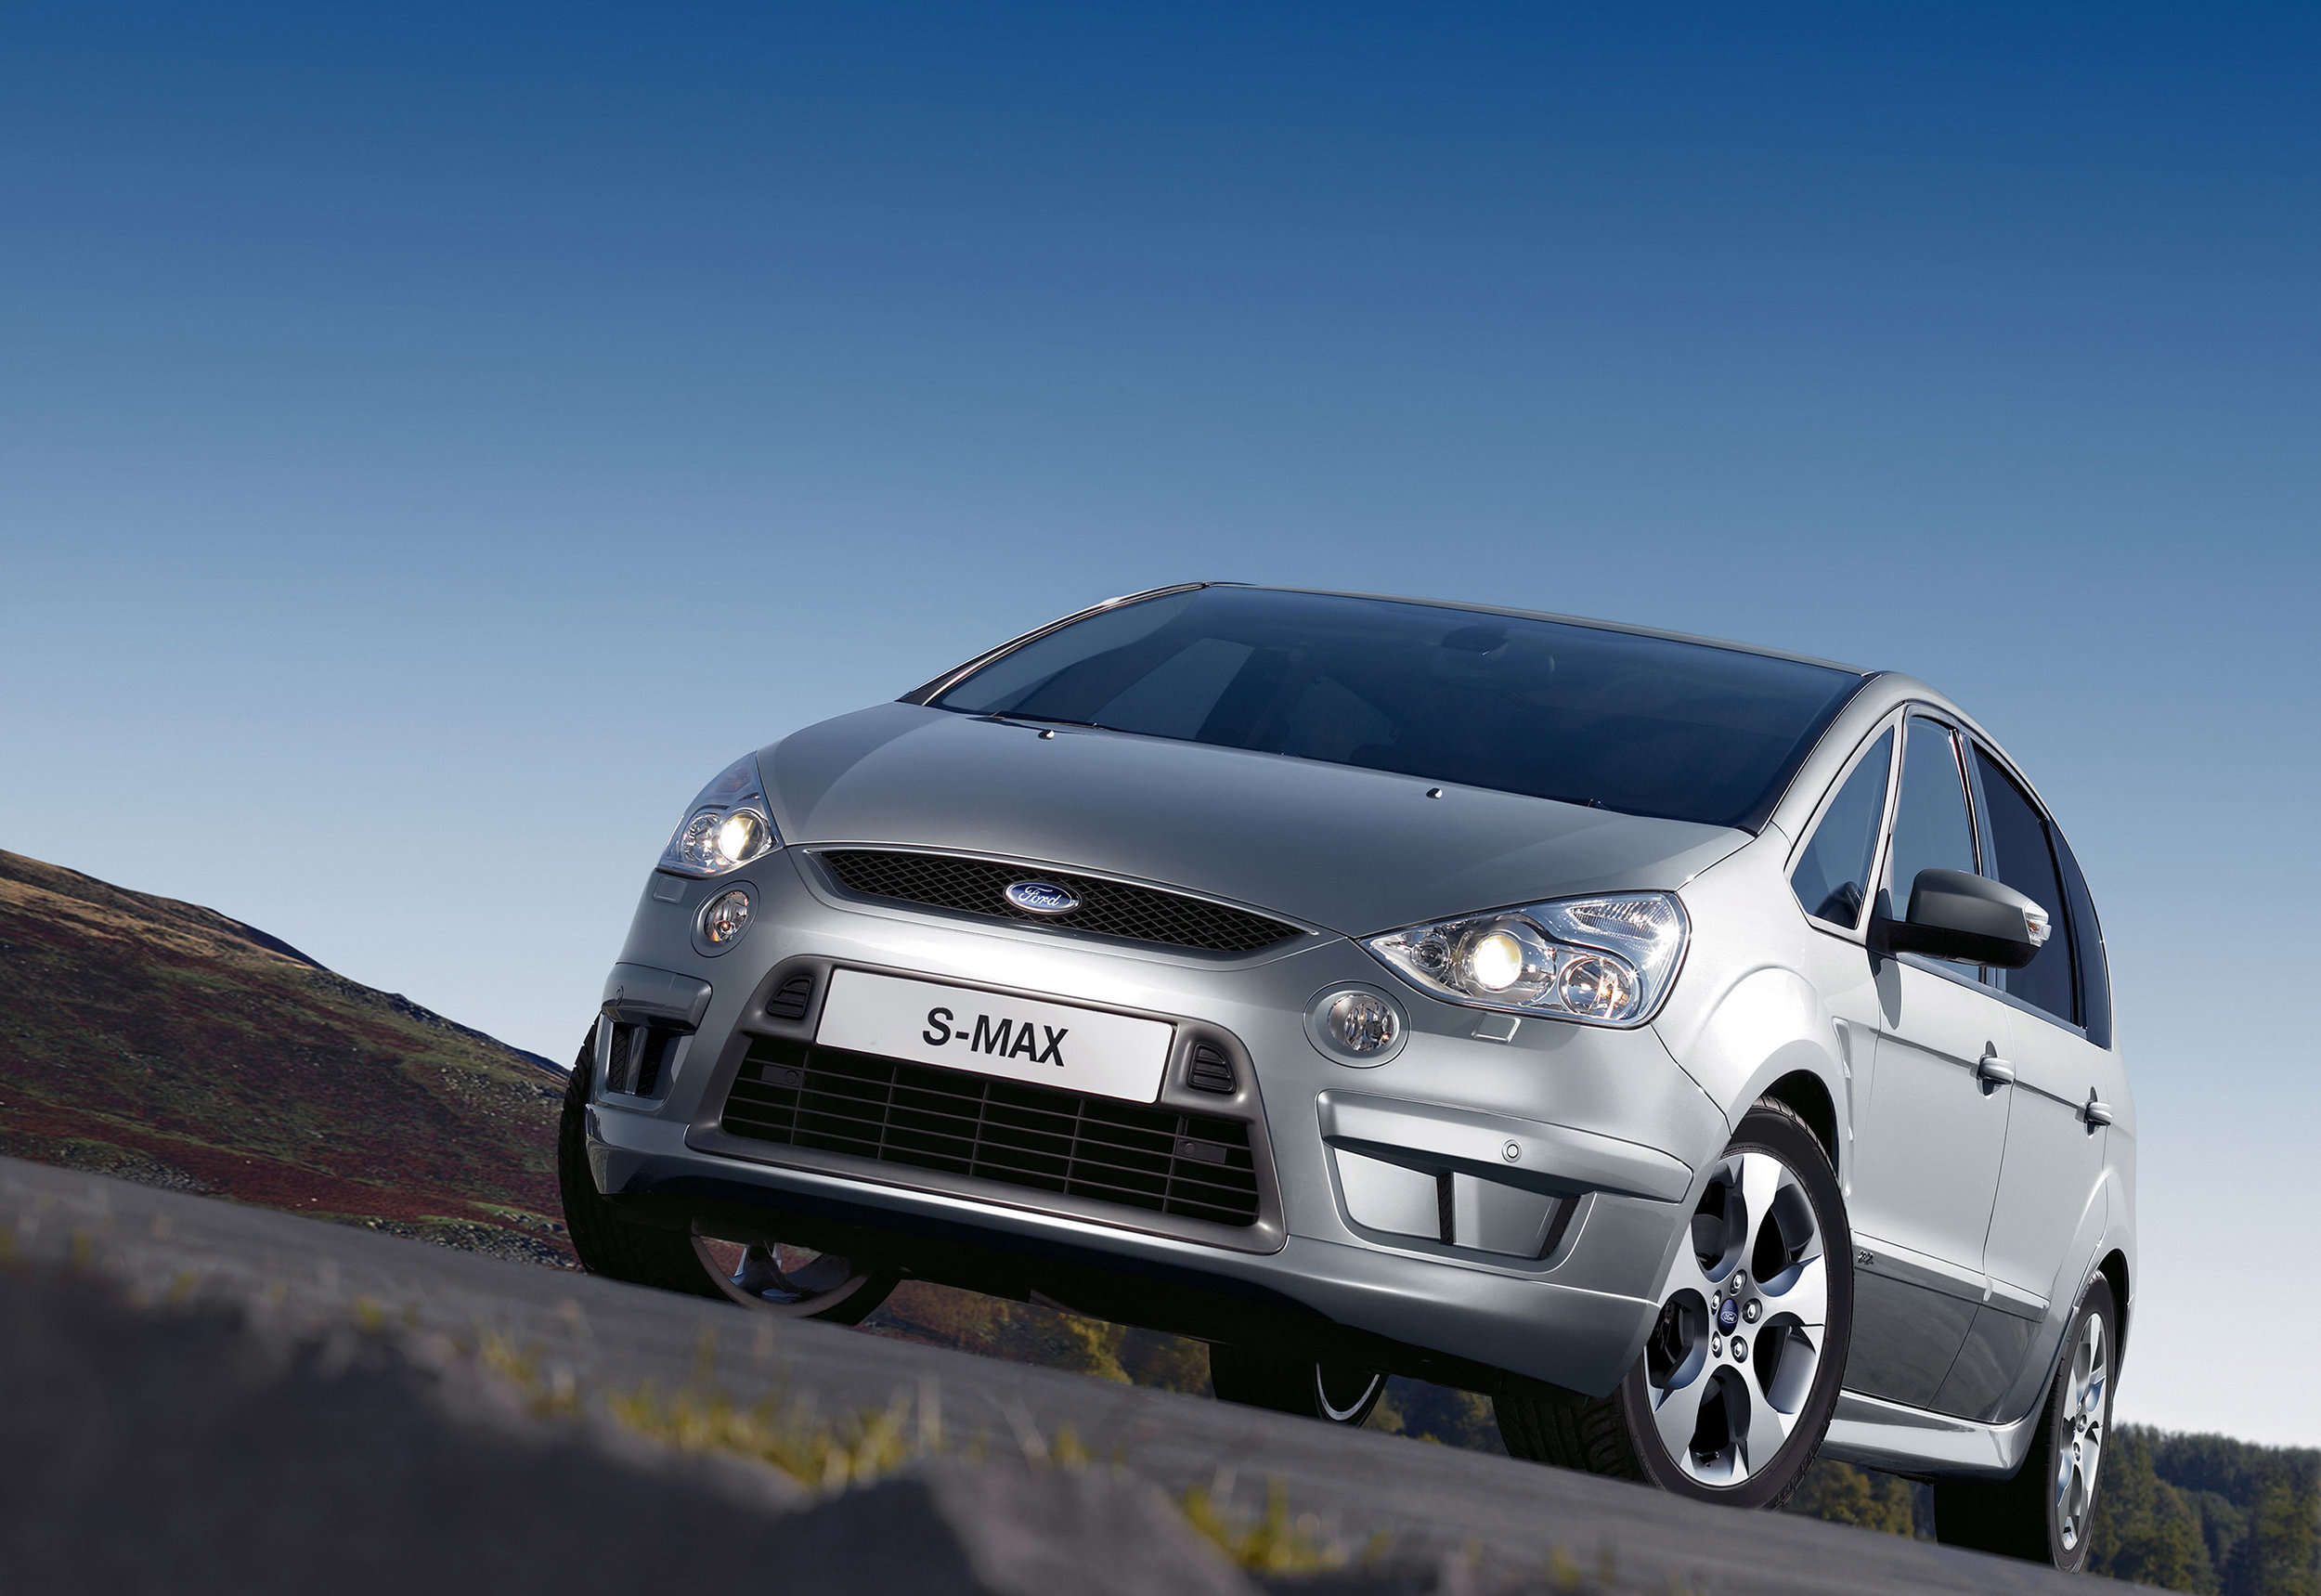 Ford S-Max -05.jpg